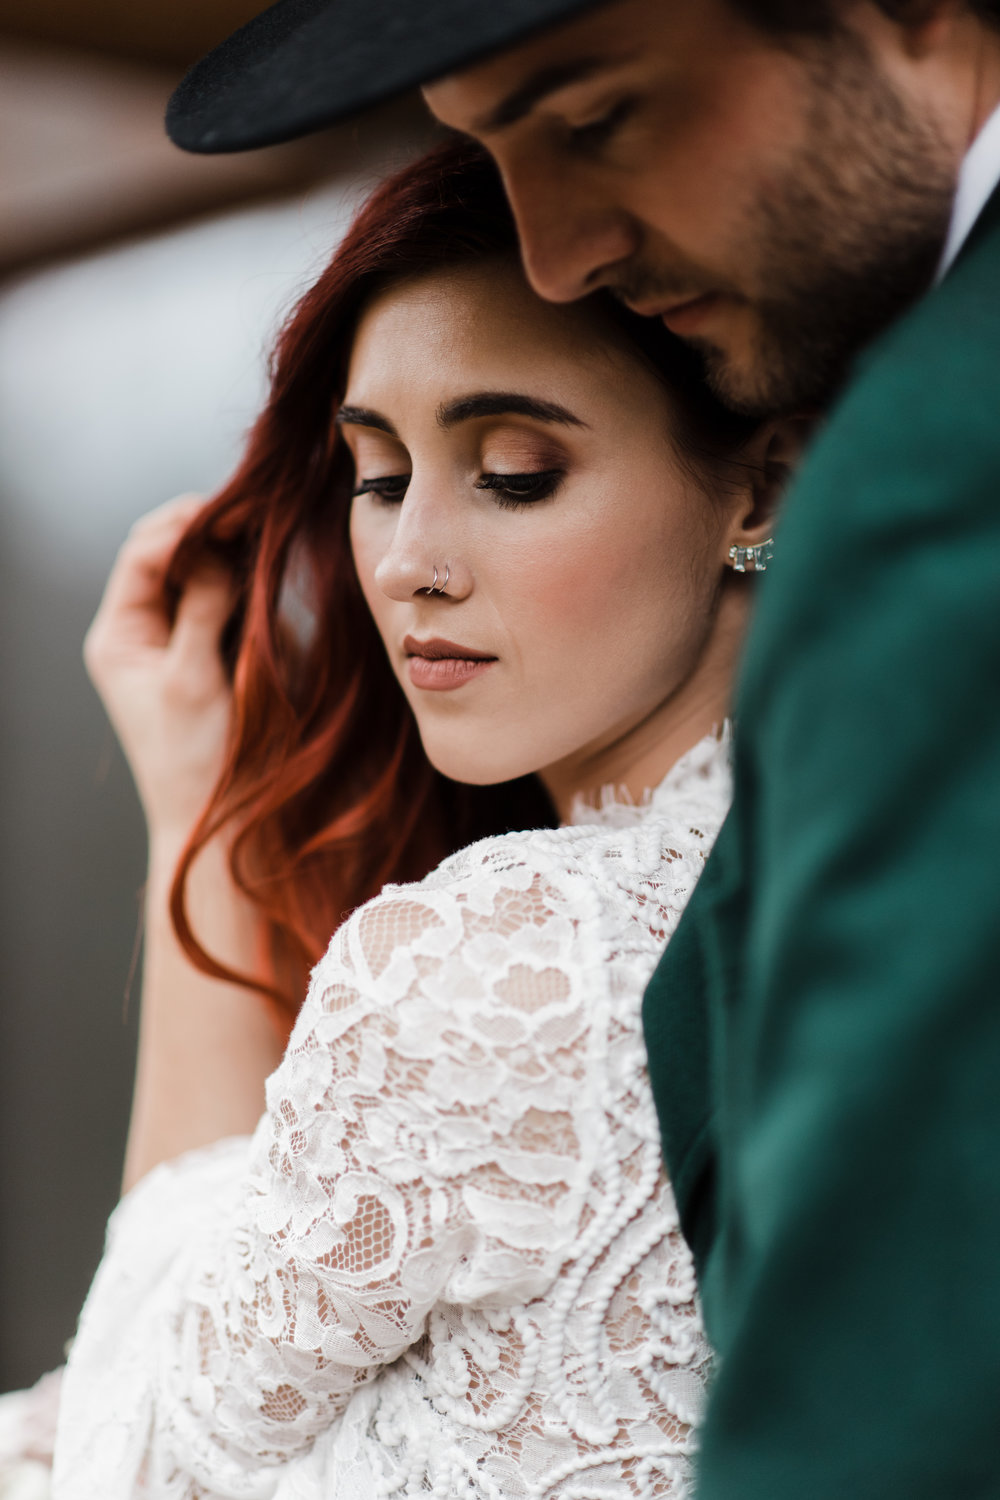 Bride with soft brown eyeshadow and nose rings wearing lace and beaded crop top and running hand through her read curly hair.